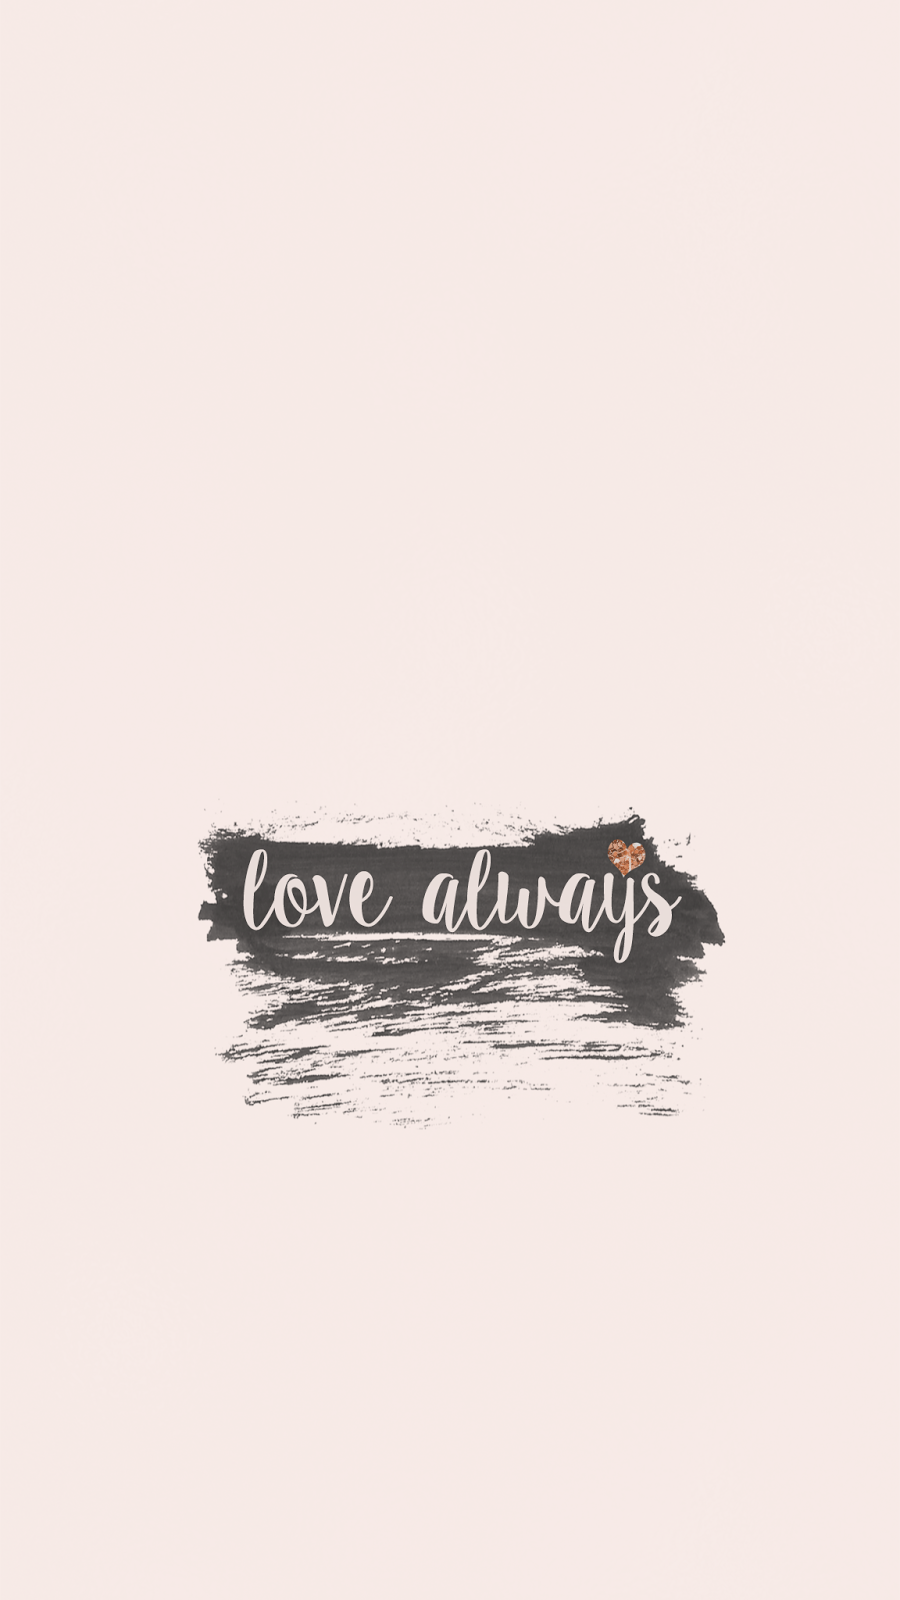 Lou Becca Bee Valentines Day Wallpapers Iphone Ipad Android Devices Illus Ecran D Accueil Iphone Fond D Ecran Iphone Arriere Plan